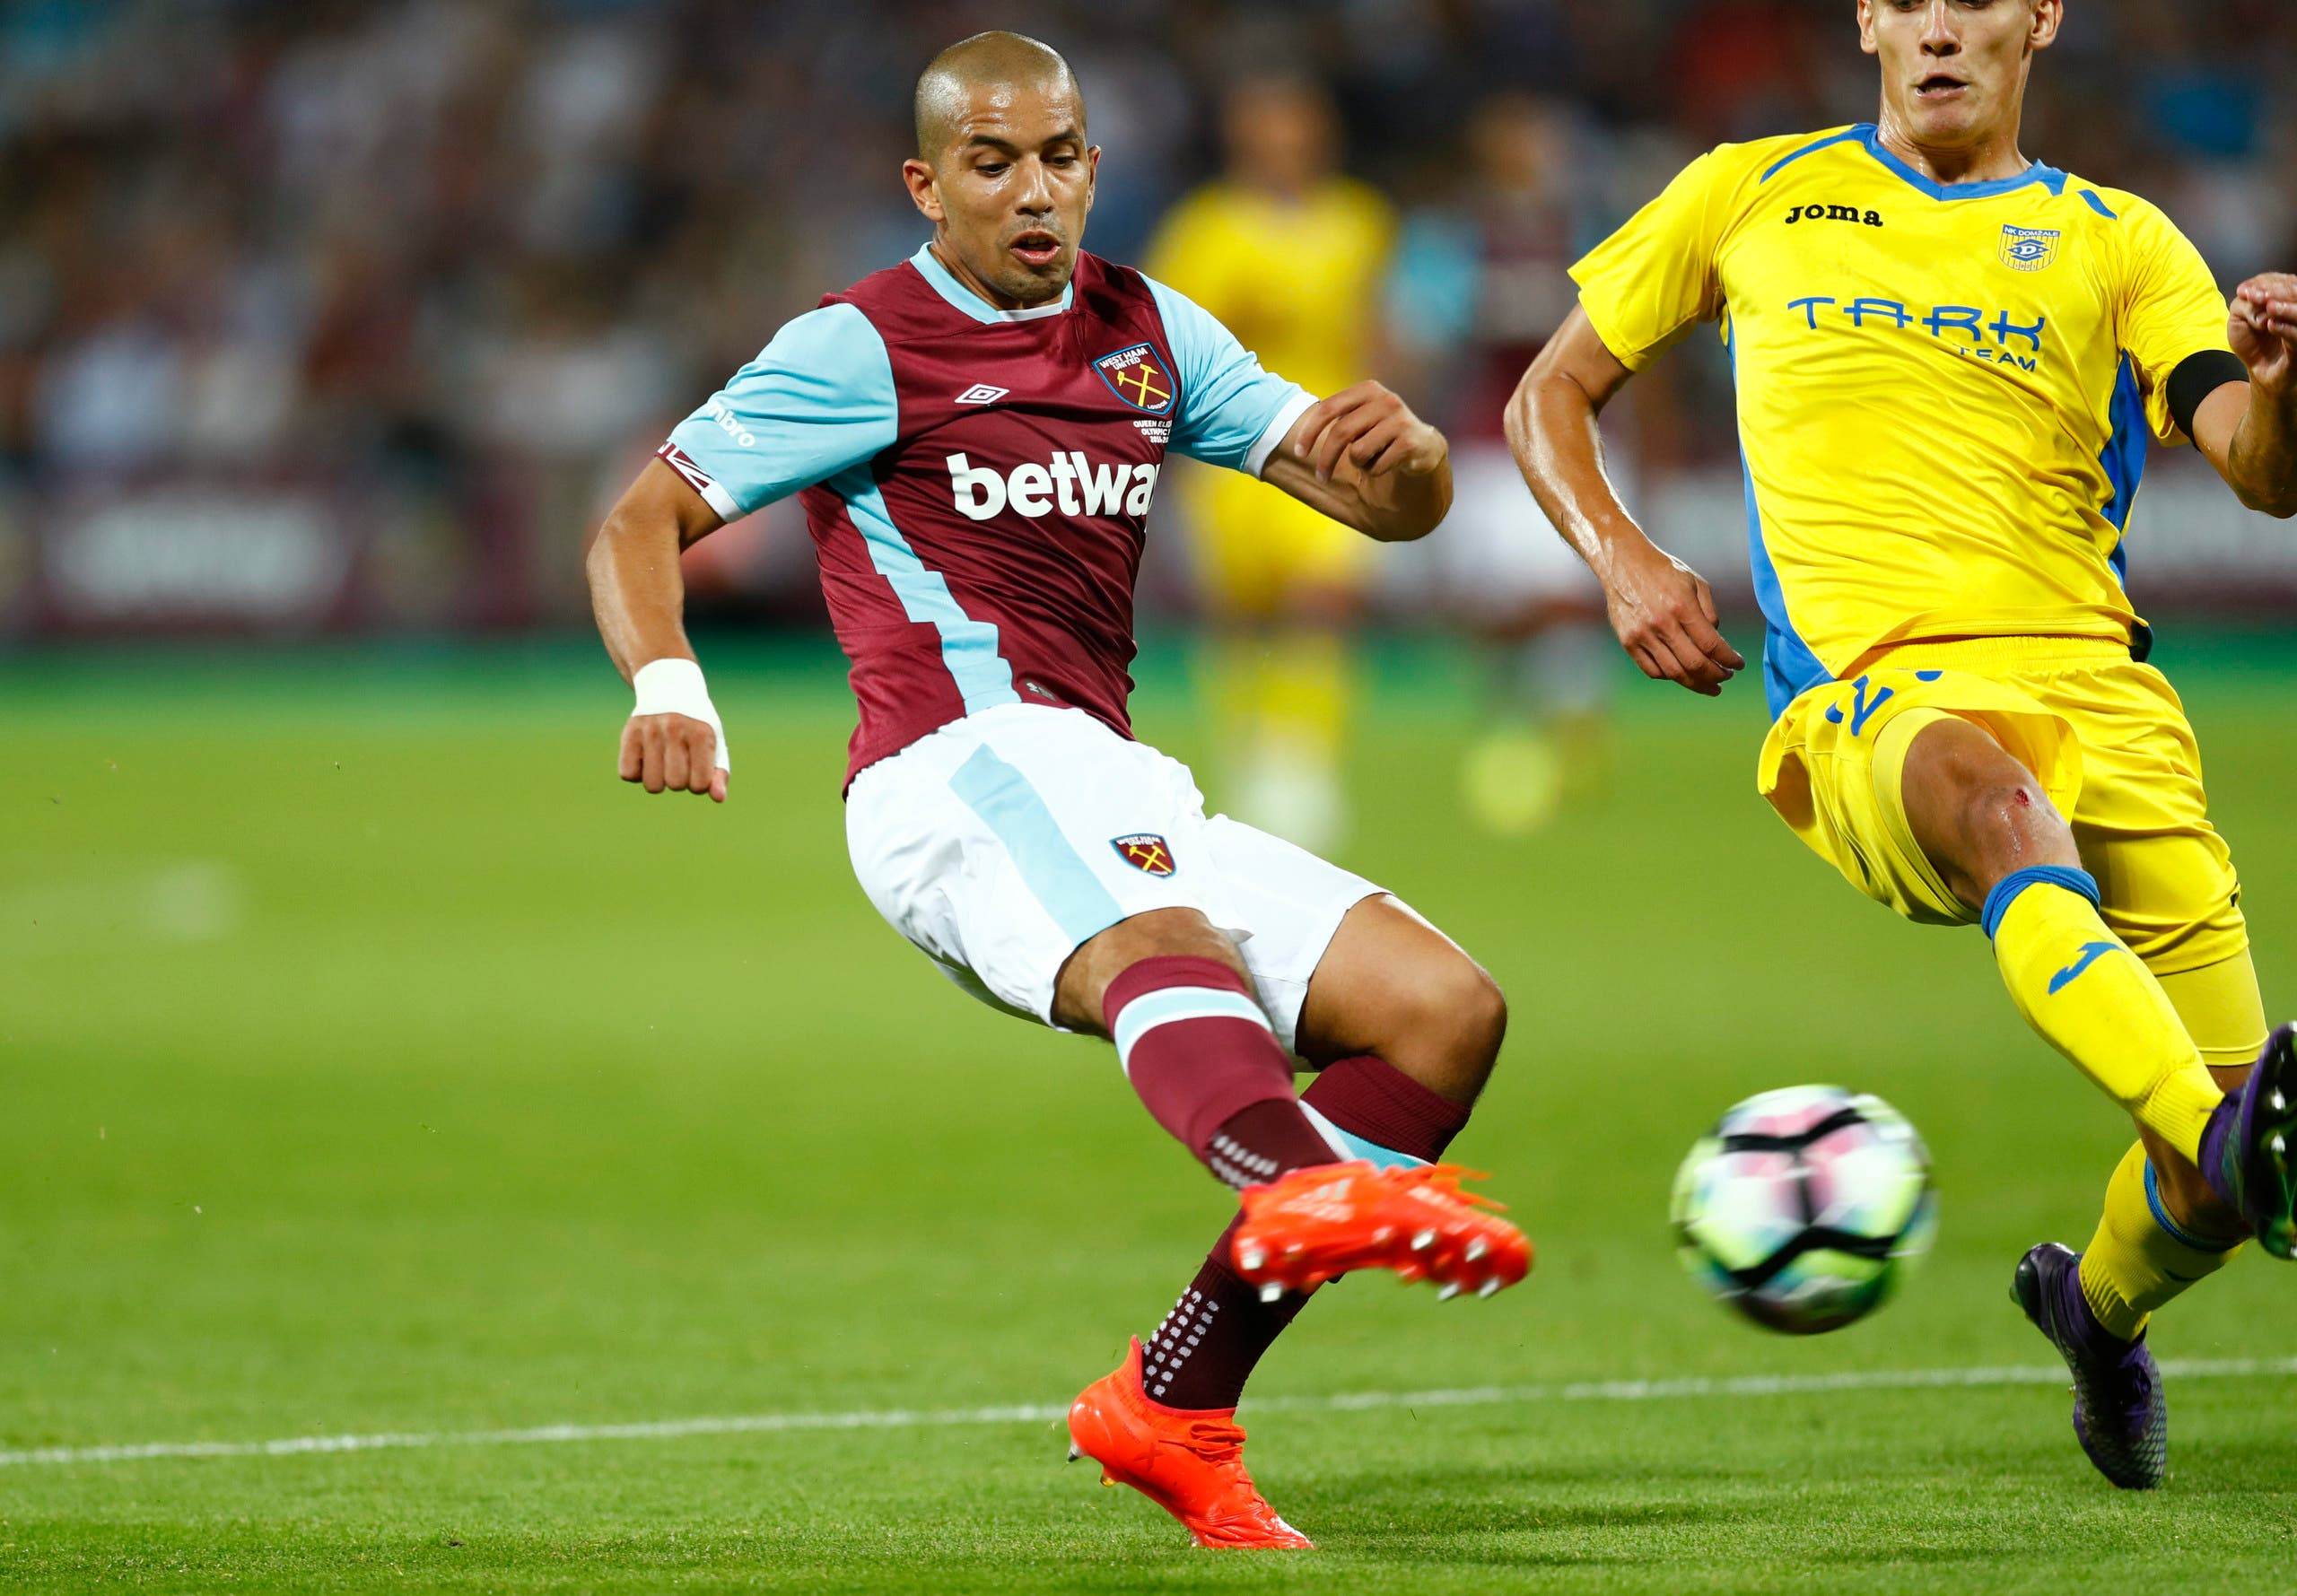 West Ham's Sofiane Feghouli scores their third goal reuters